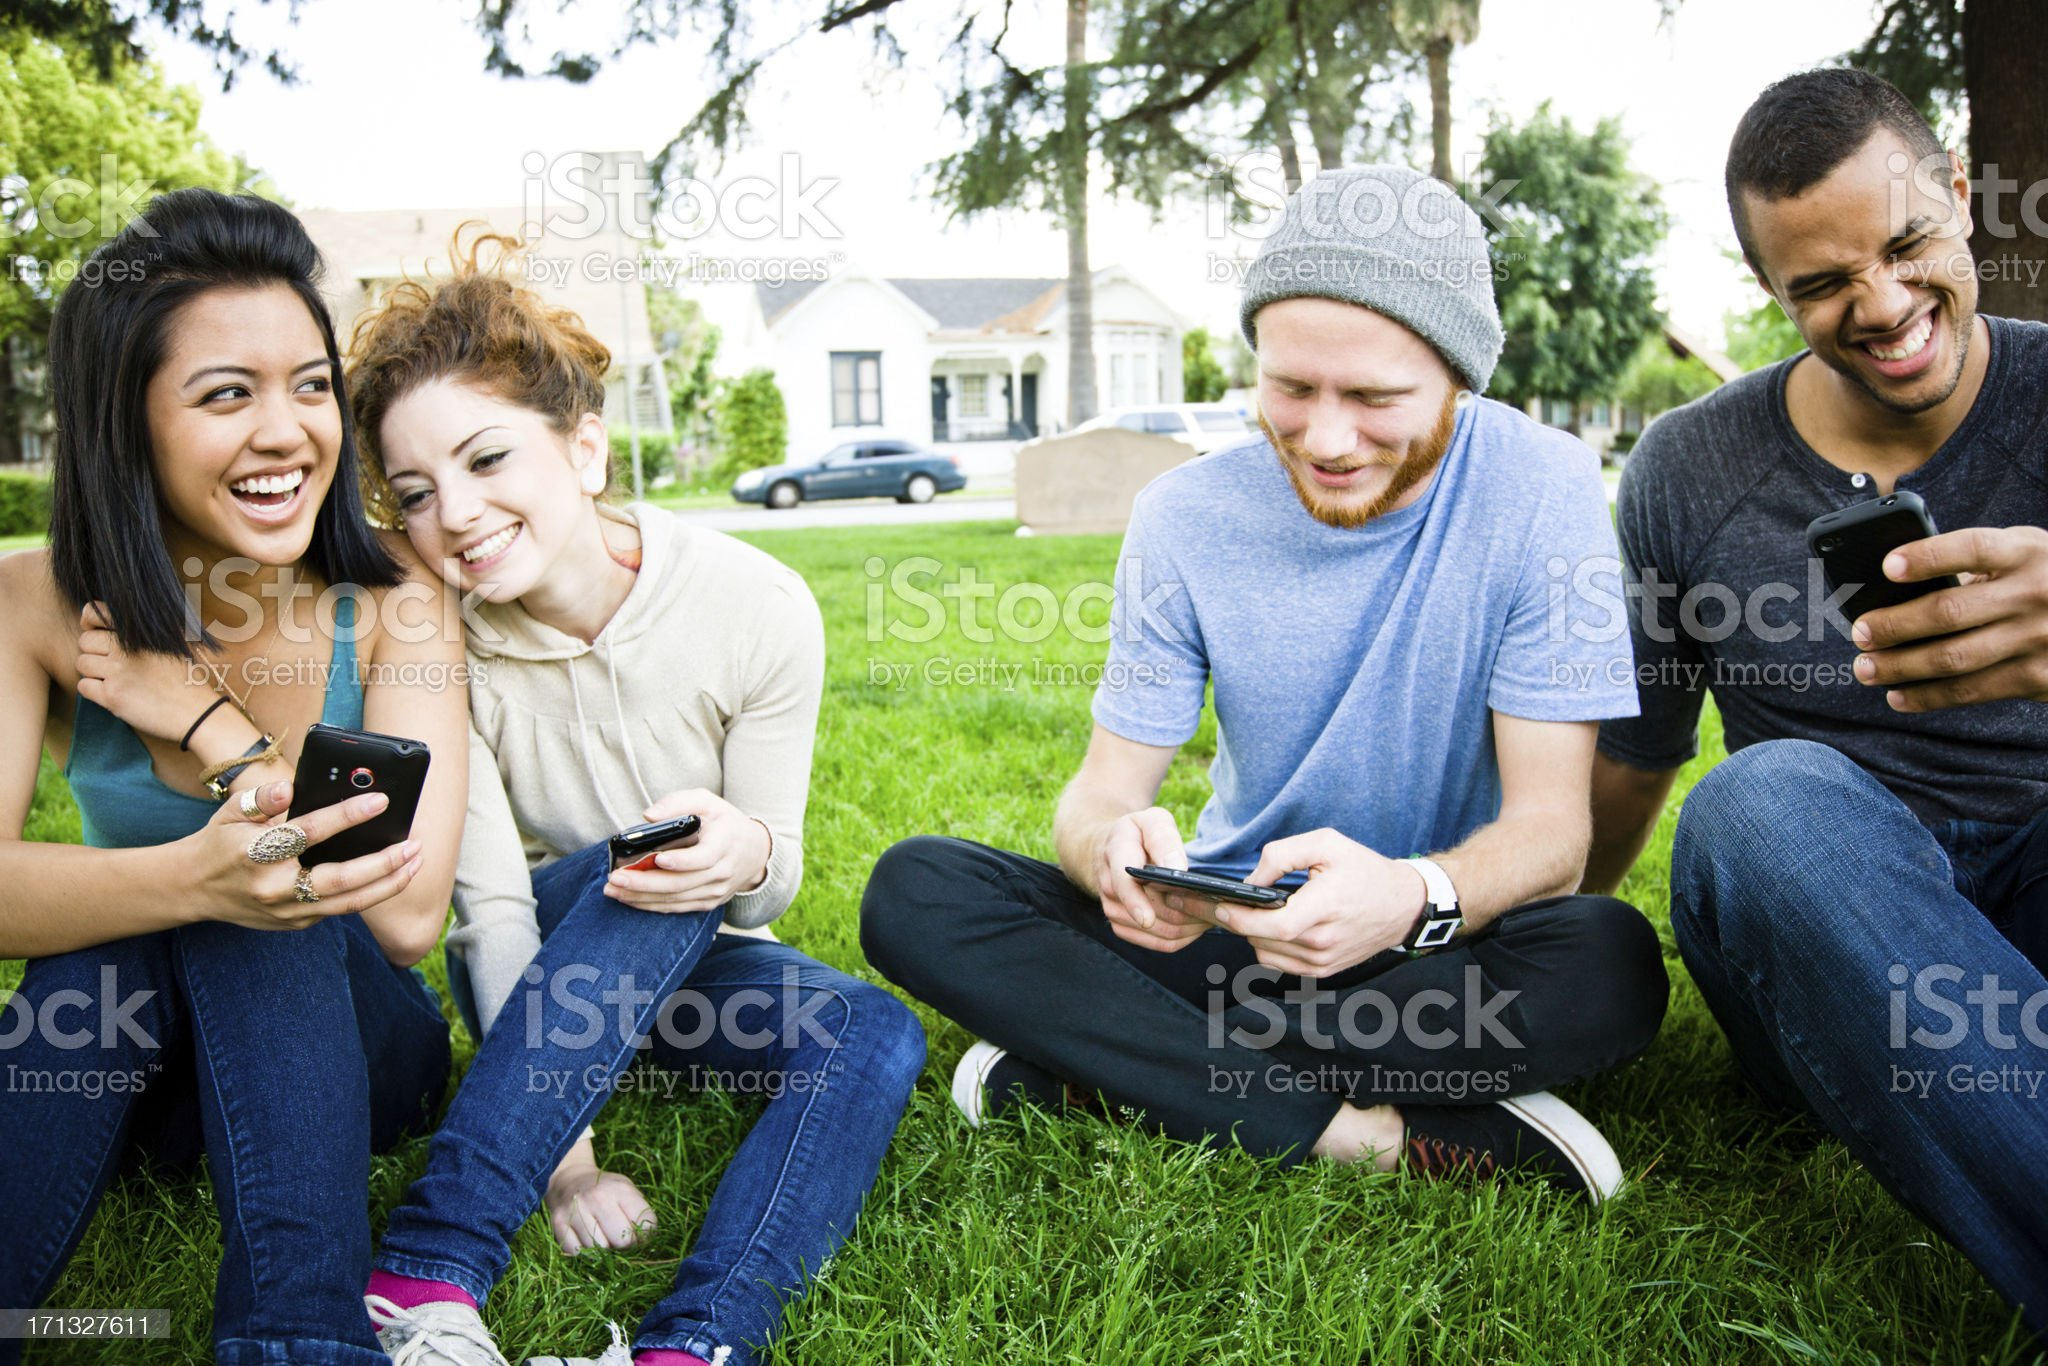 group of teens texting and laughing at park royalty-free stock photo